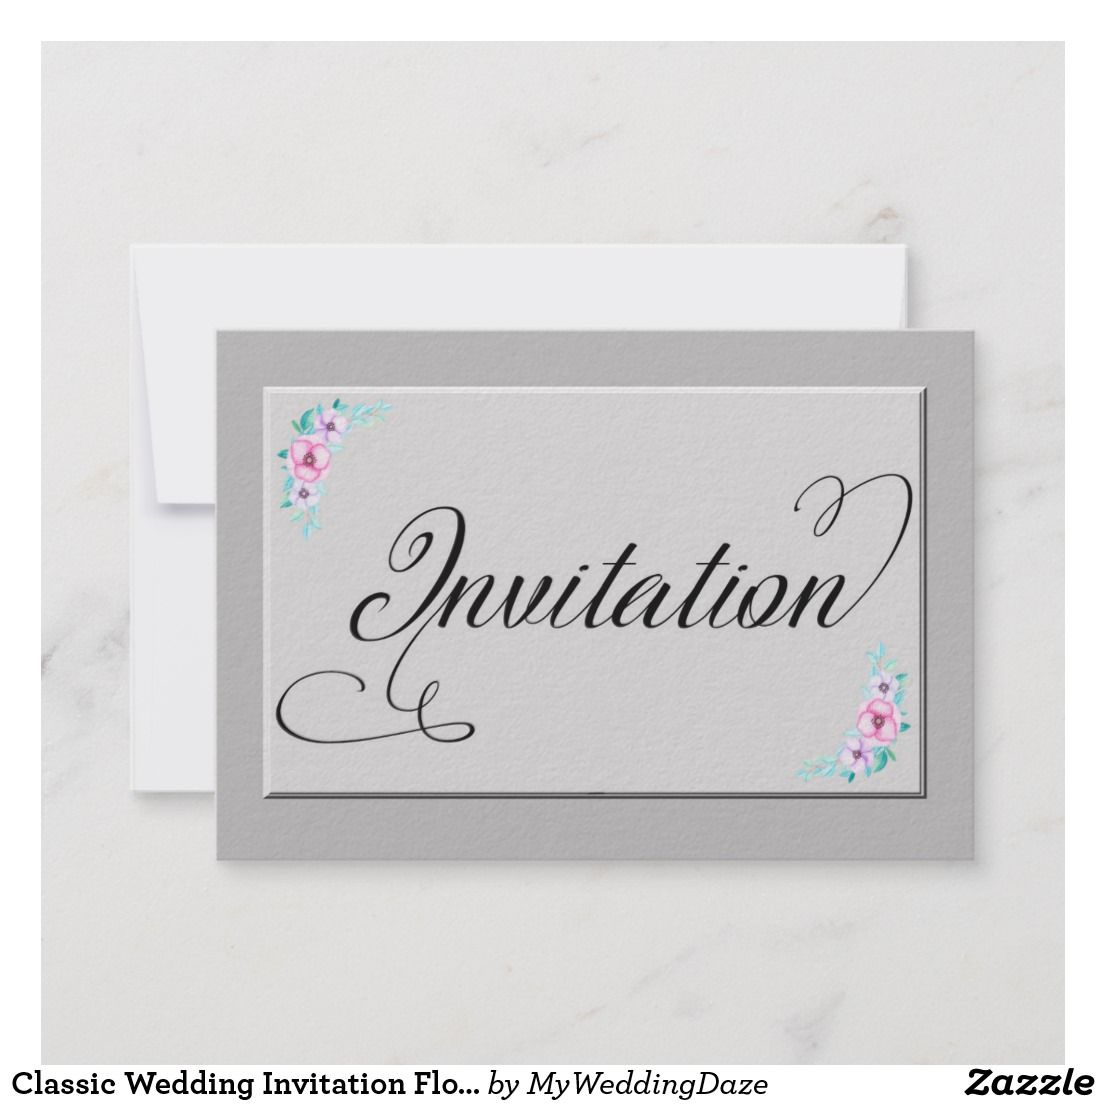 Classic Wedding Invitation Floral 2 Design Thank You Cards Thank